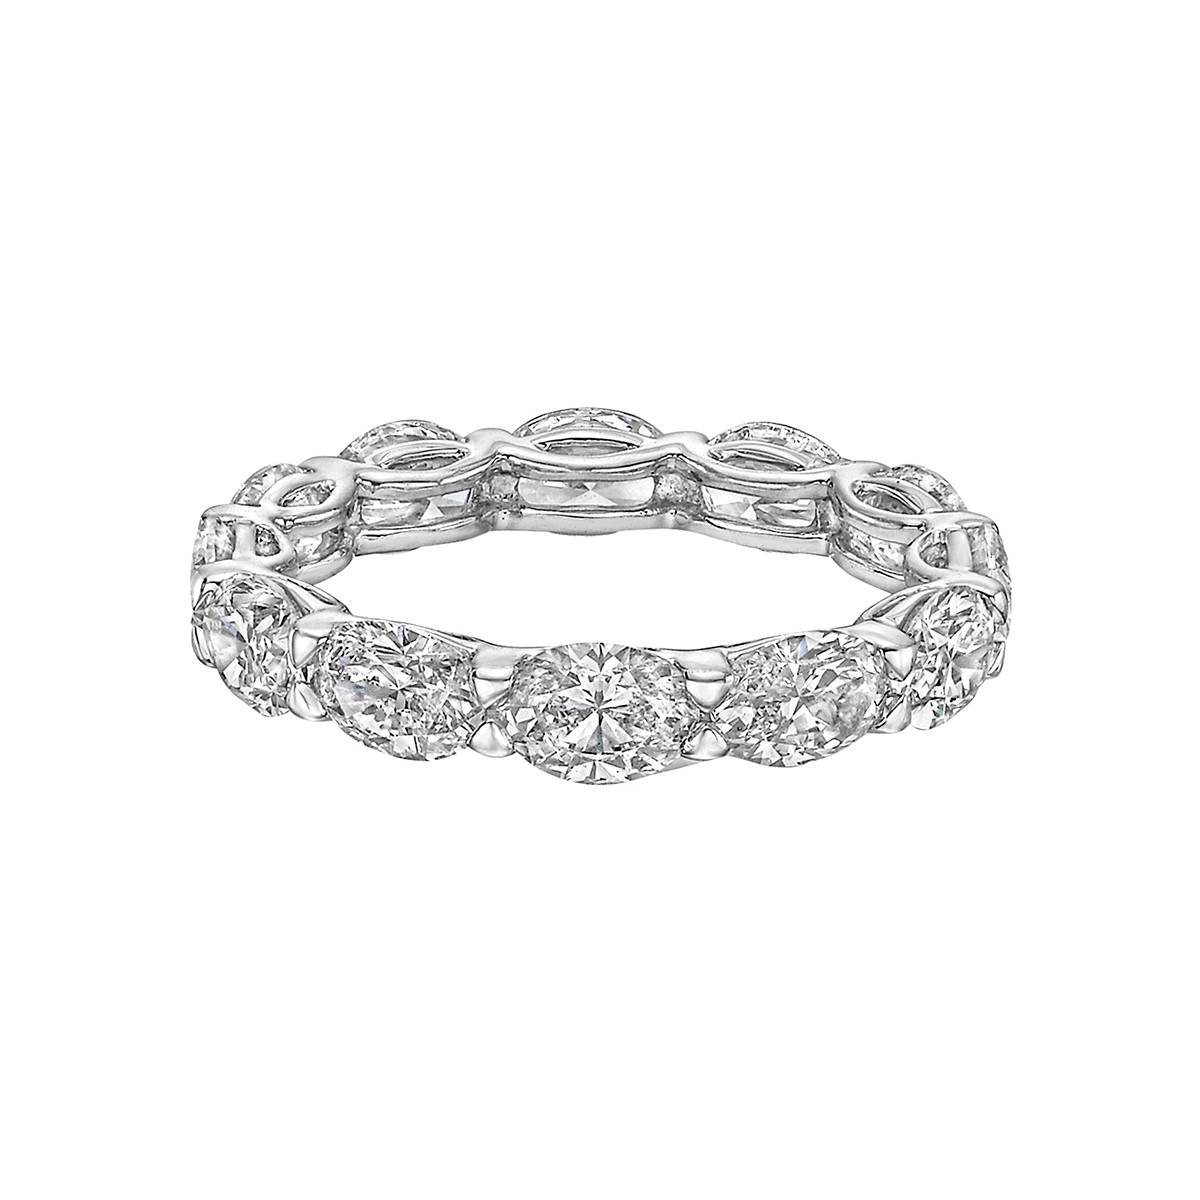 Oval-Cut Diamond East-West Eternity Band (3.78ct tw)